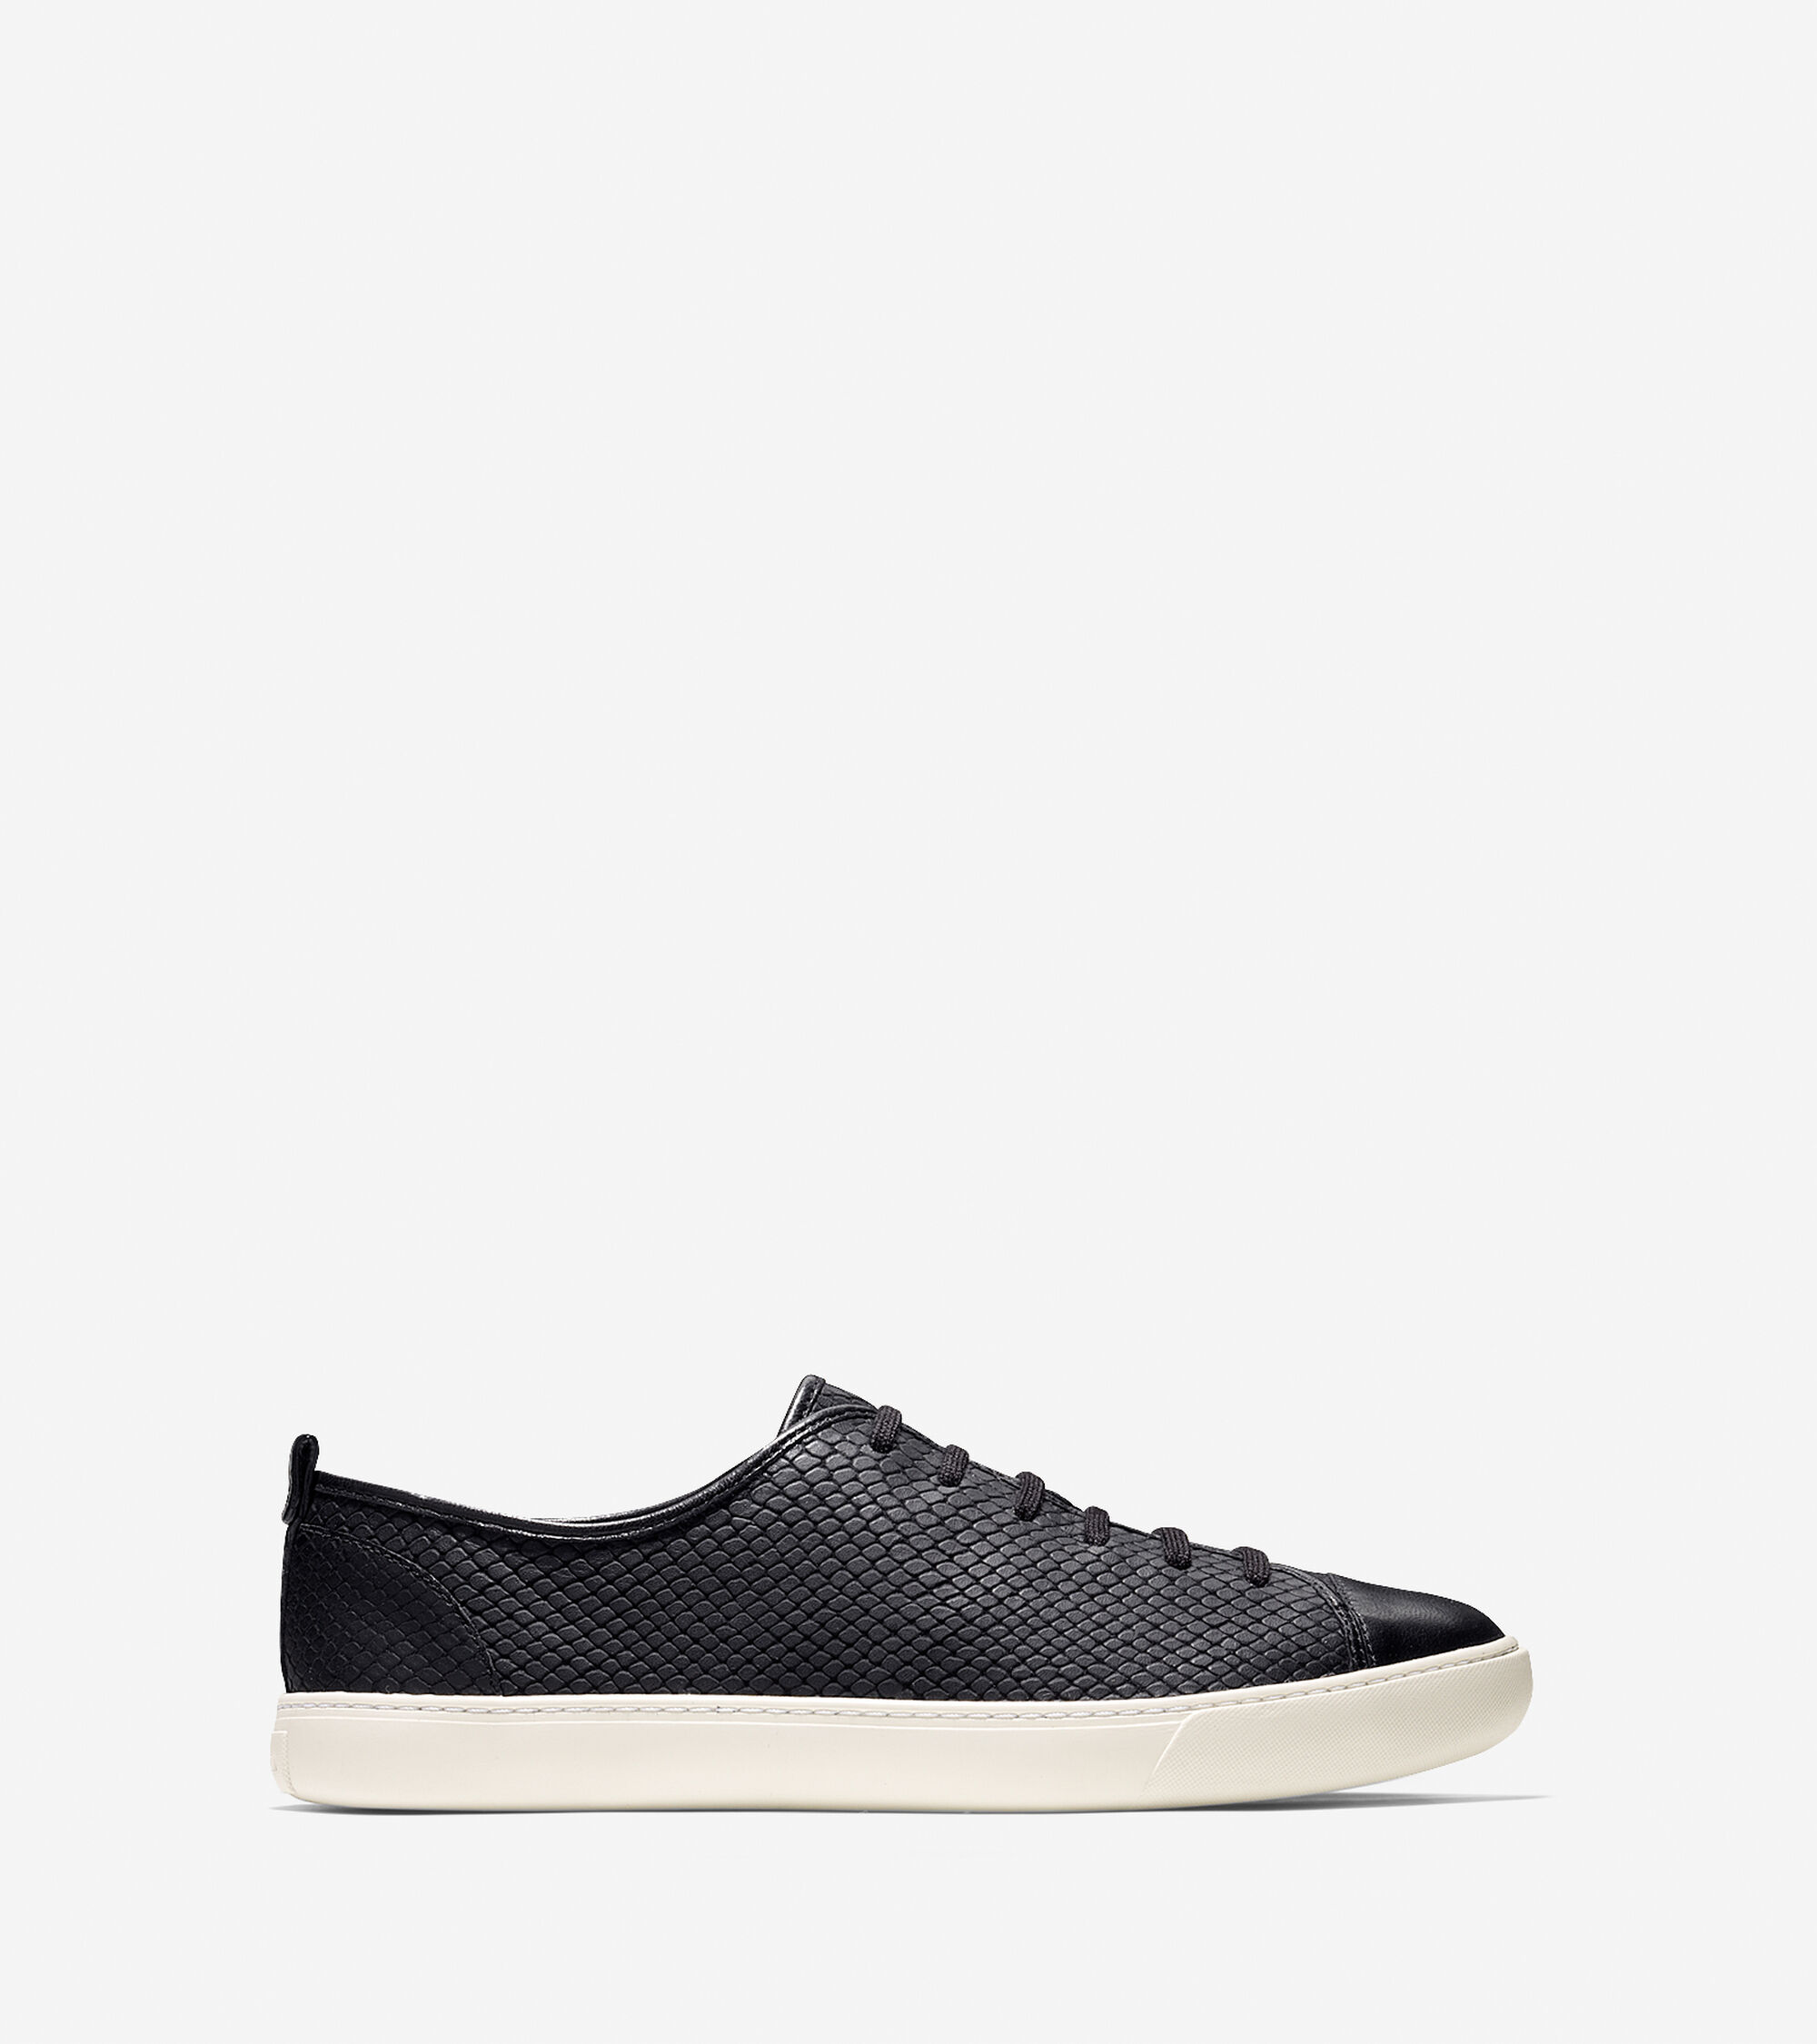 Sneakers > Hendrix Lace Up Sneaker